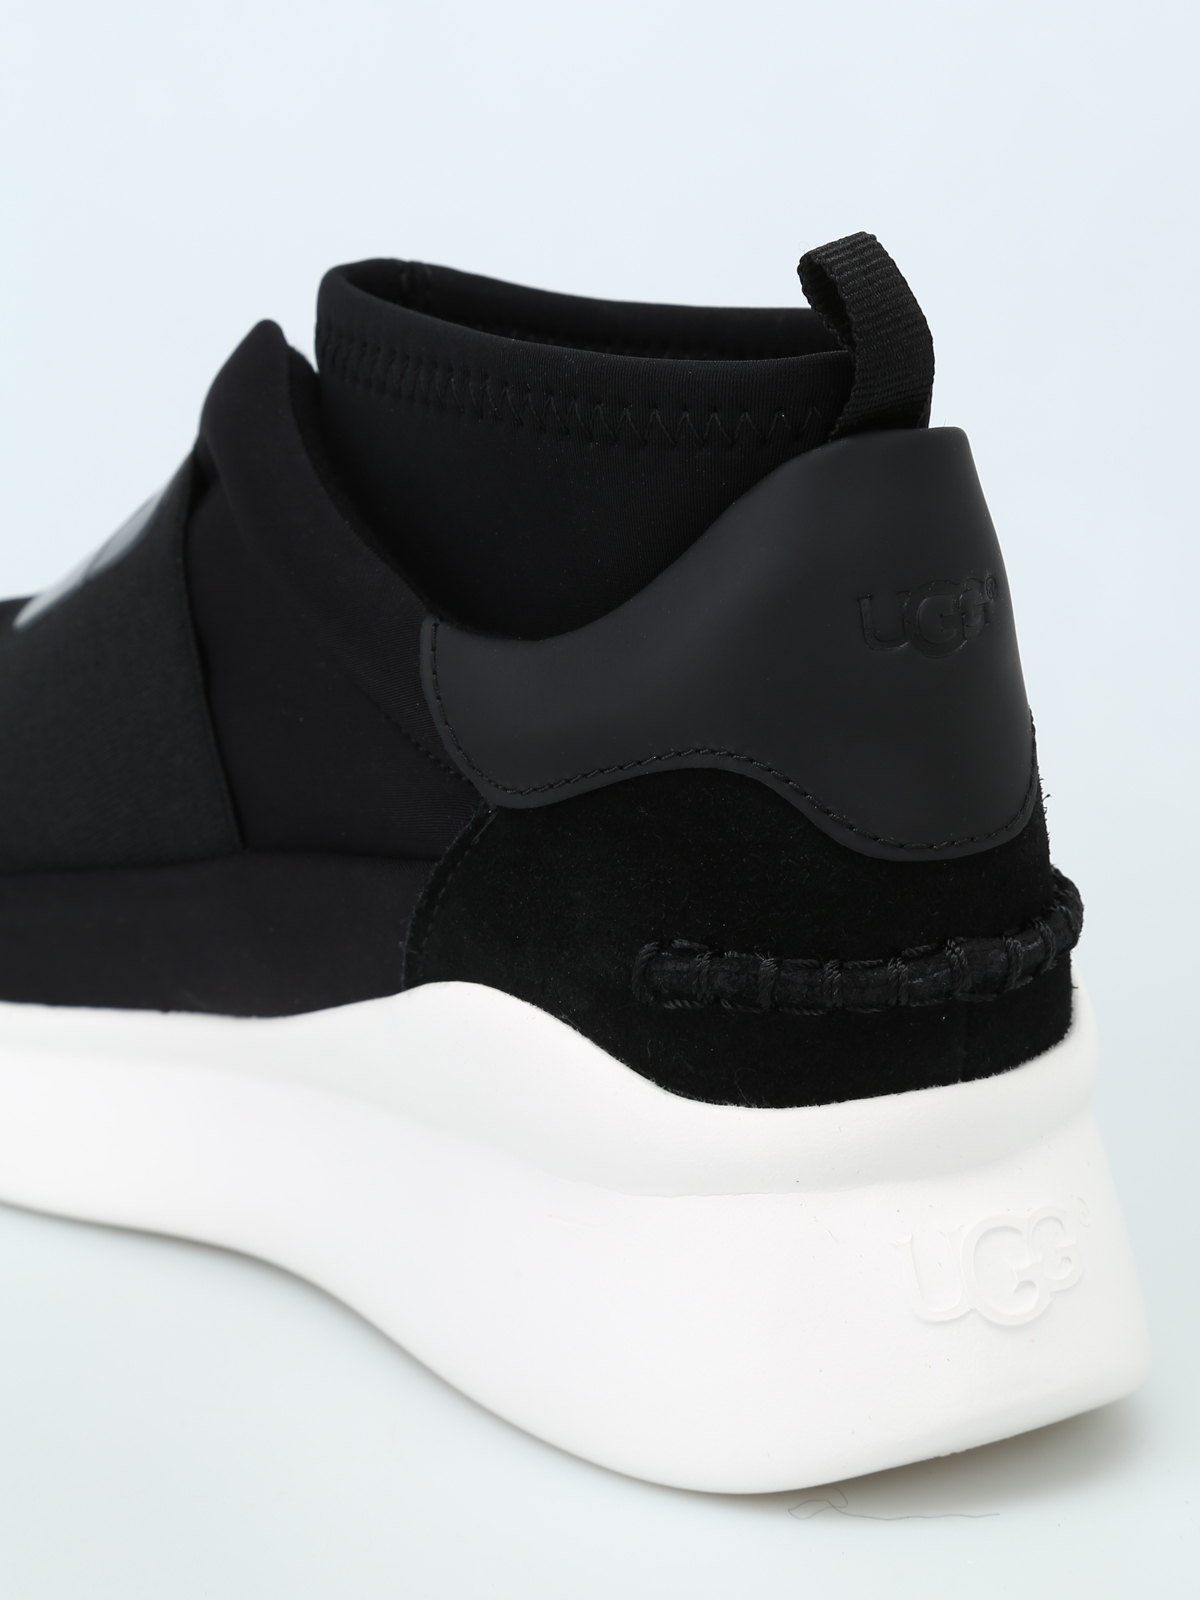 82304a19045 Ugg - Neutra black sock style mid top sneakers - trainers - 1095097 ...